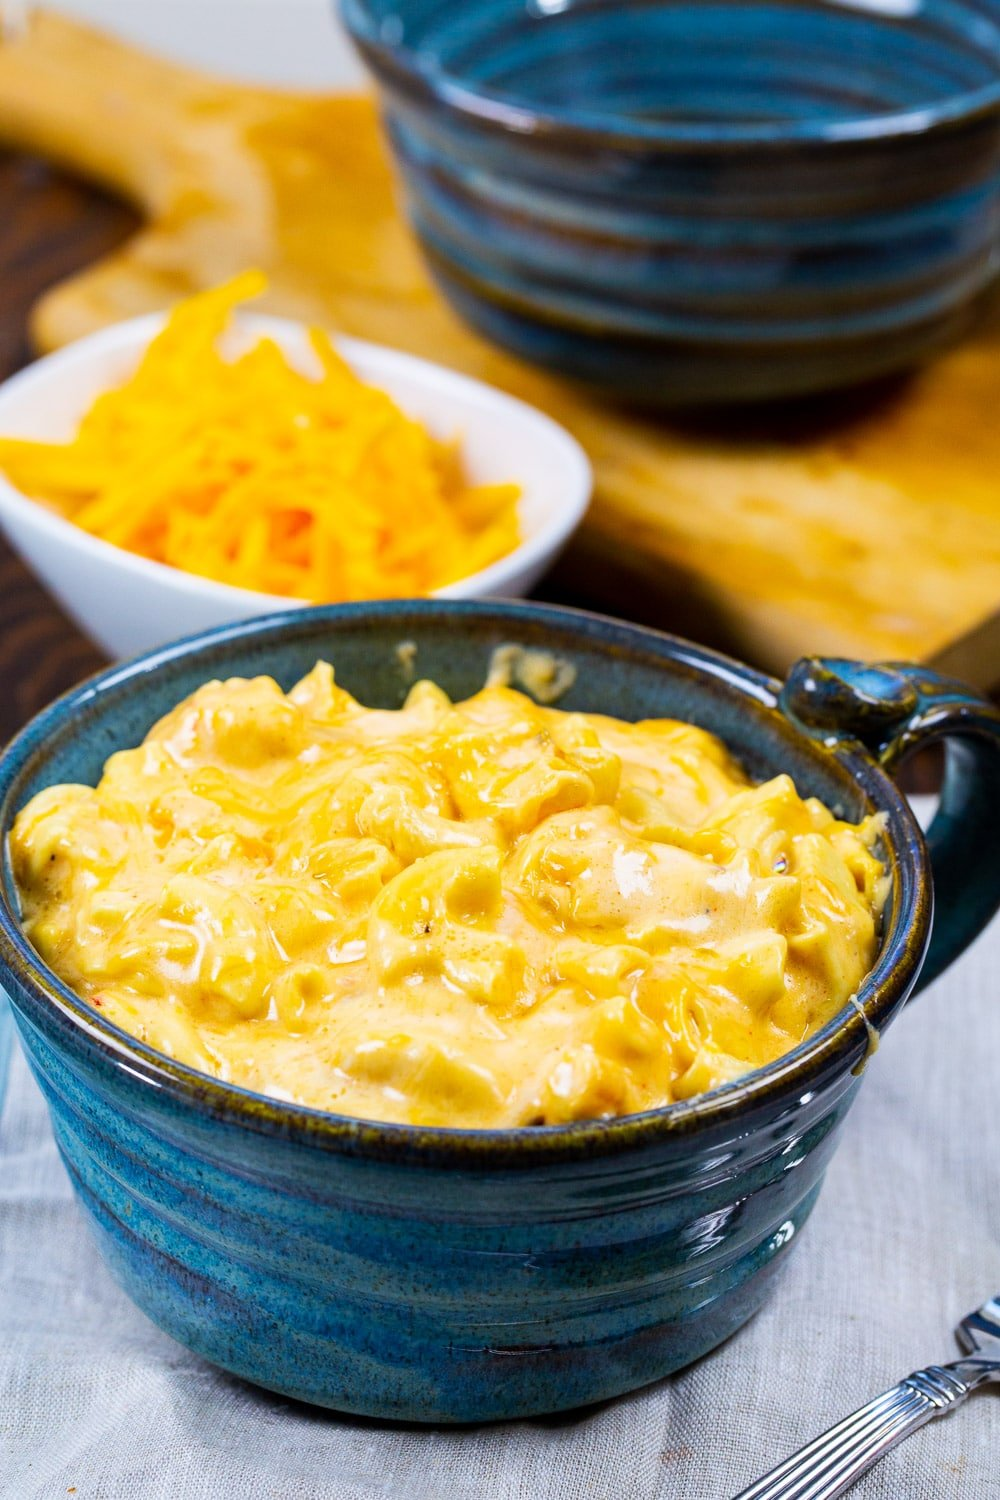 Creamy Mac and Cheese in a blue bowl.